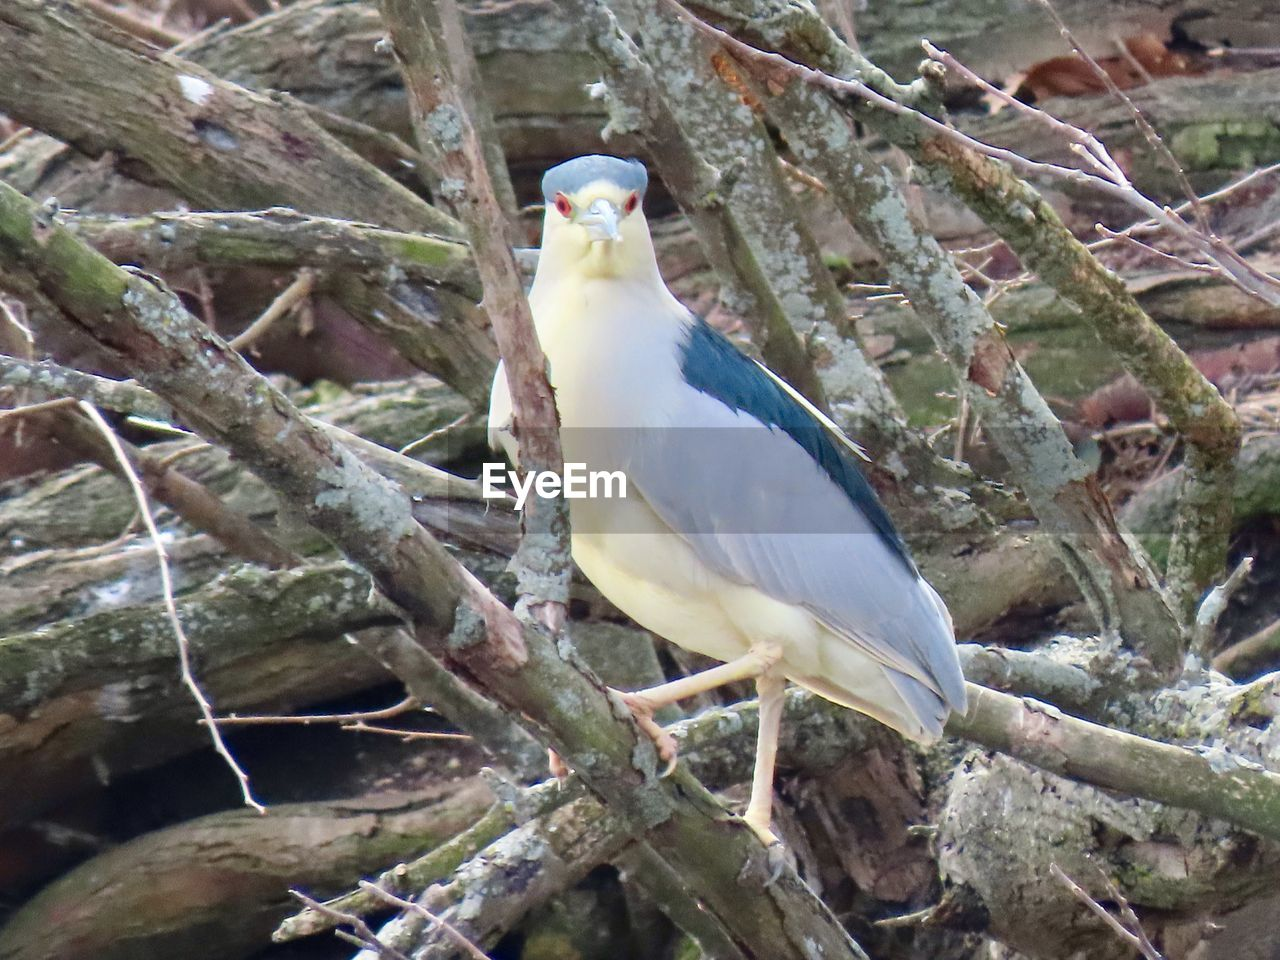 animals in the wild, vertebrate, bird, animal themes, perching, animal wildlife, animal, one animal, branch, tree, plant, no people, day, focus on foreground, nature, outdoors, close-up, beauty in nature, white color, beak